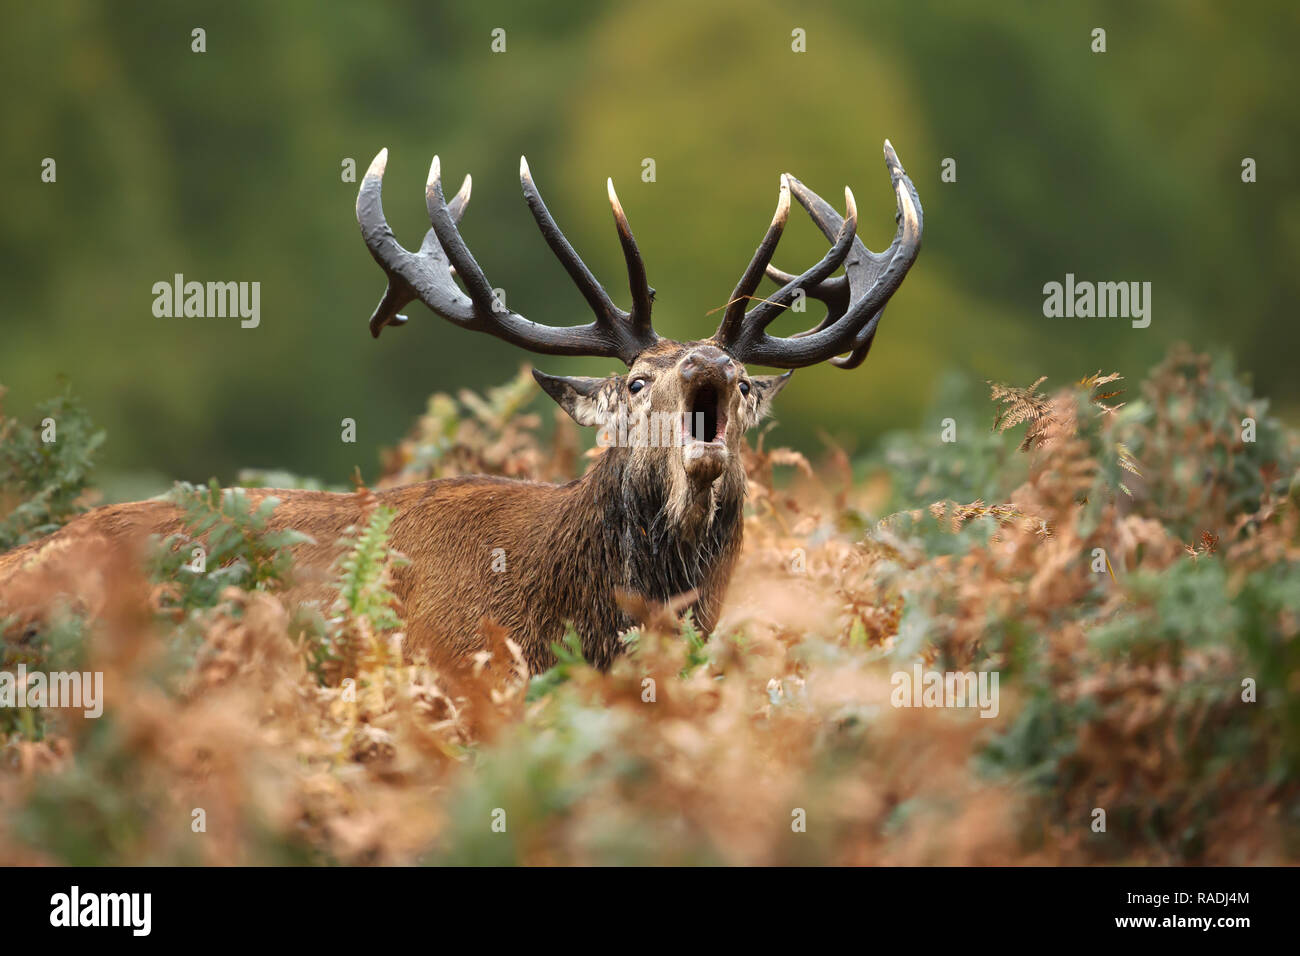 Close-up of a Red Deer roaring during mating season in autumn, UK. - Stock Image